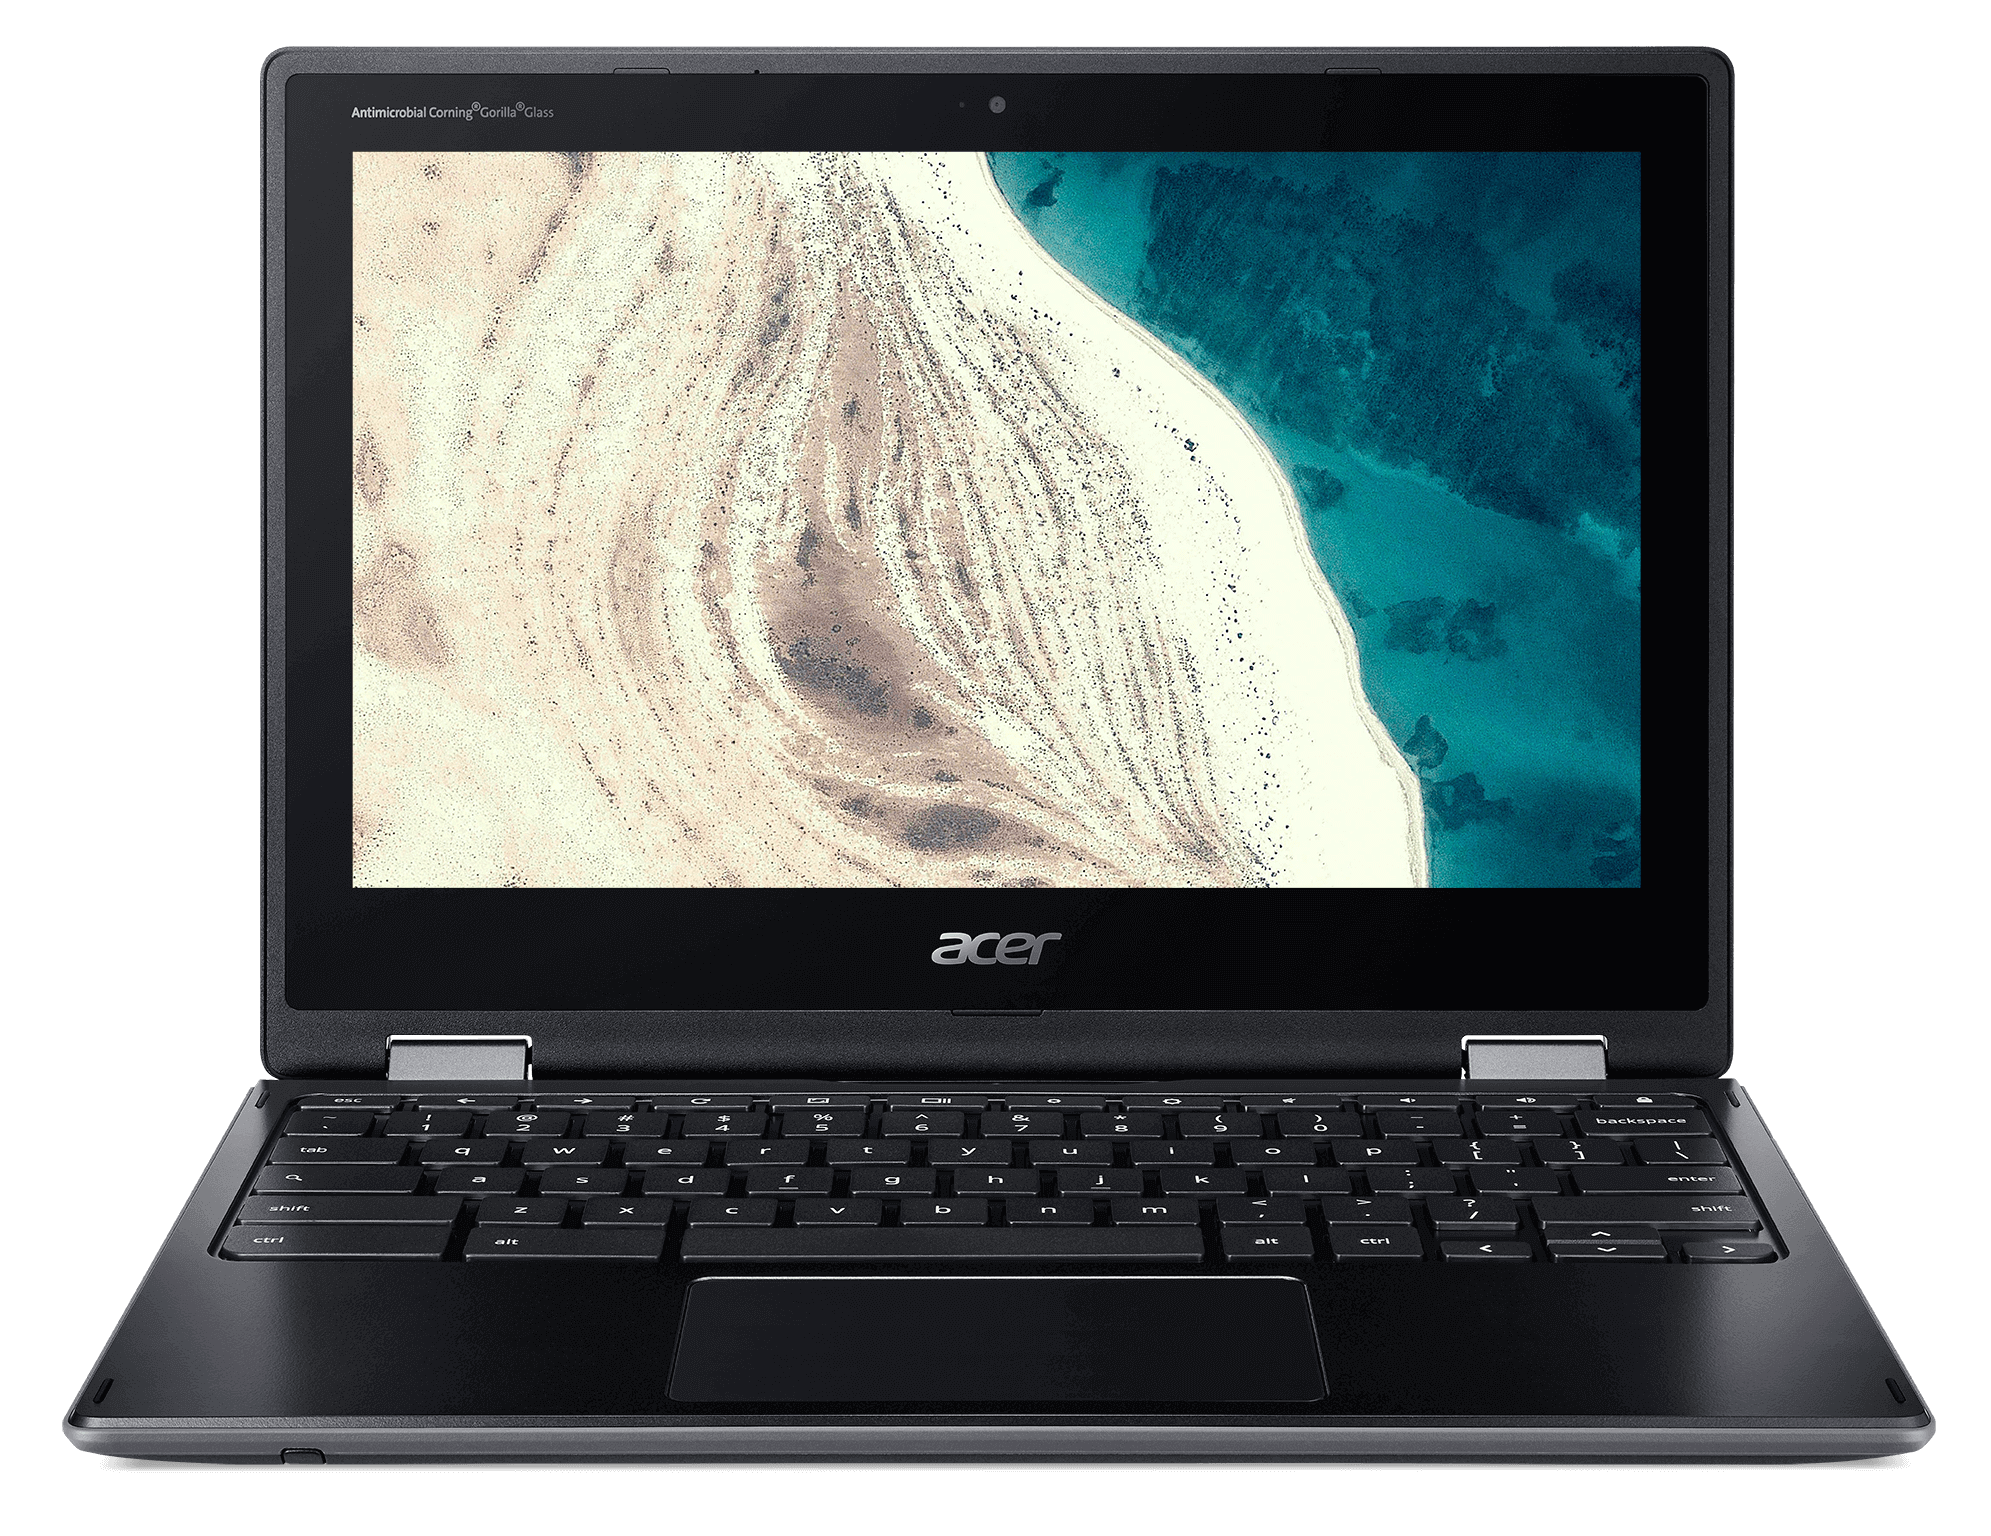 Image result for chromebook acer 752